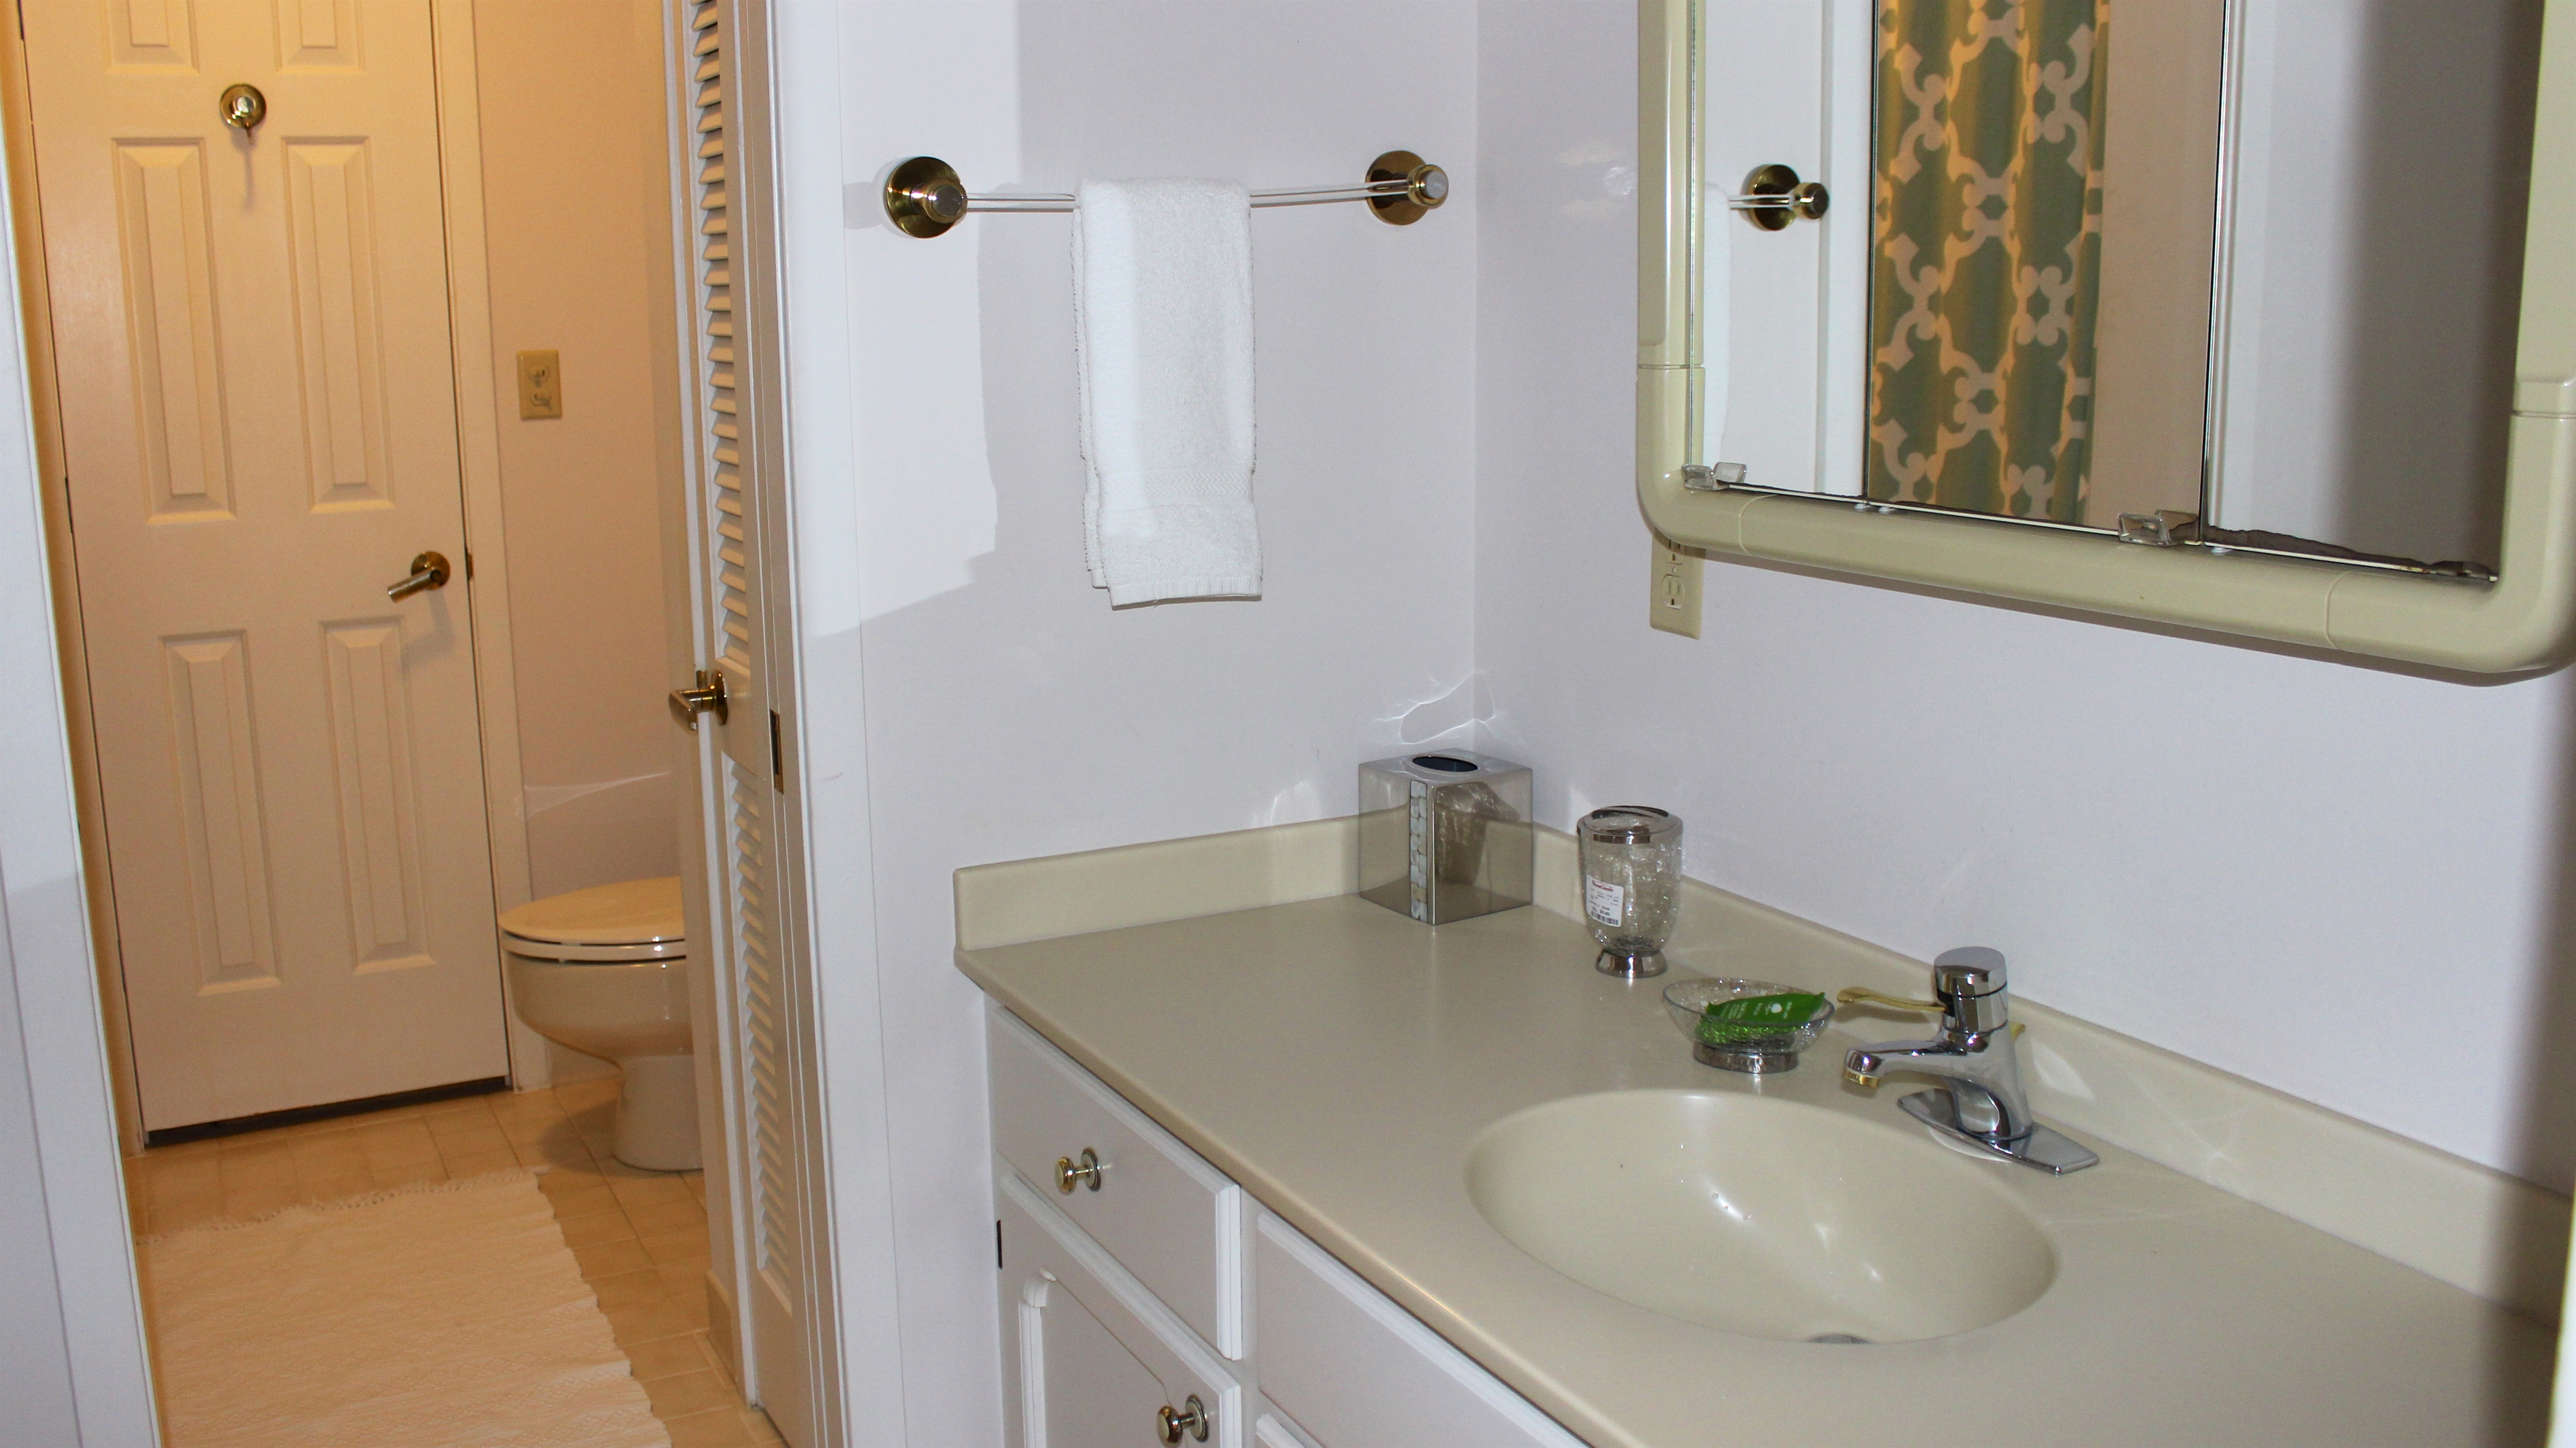 The tub/shower and toilet are in a separate room.